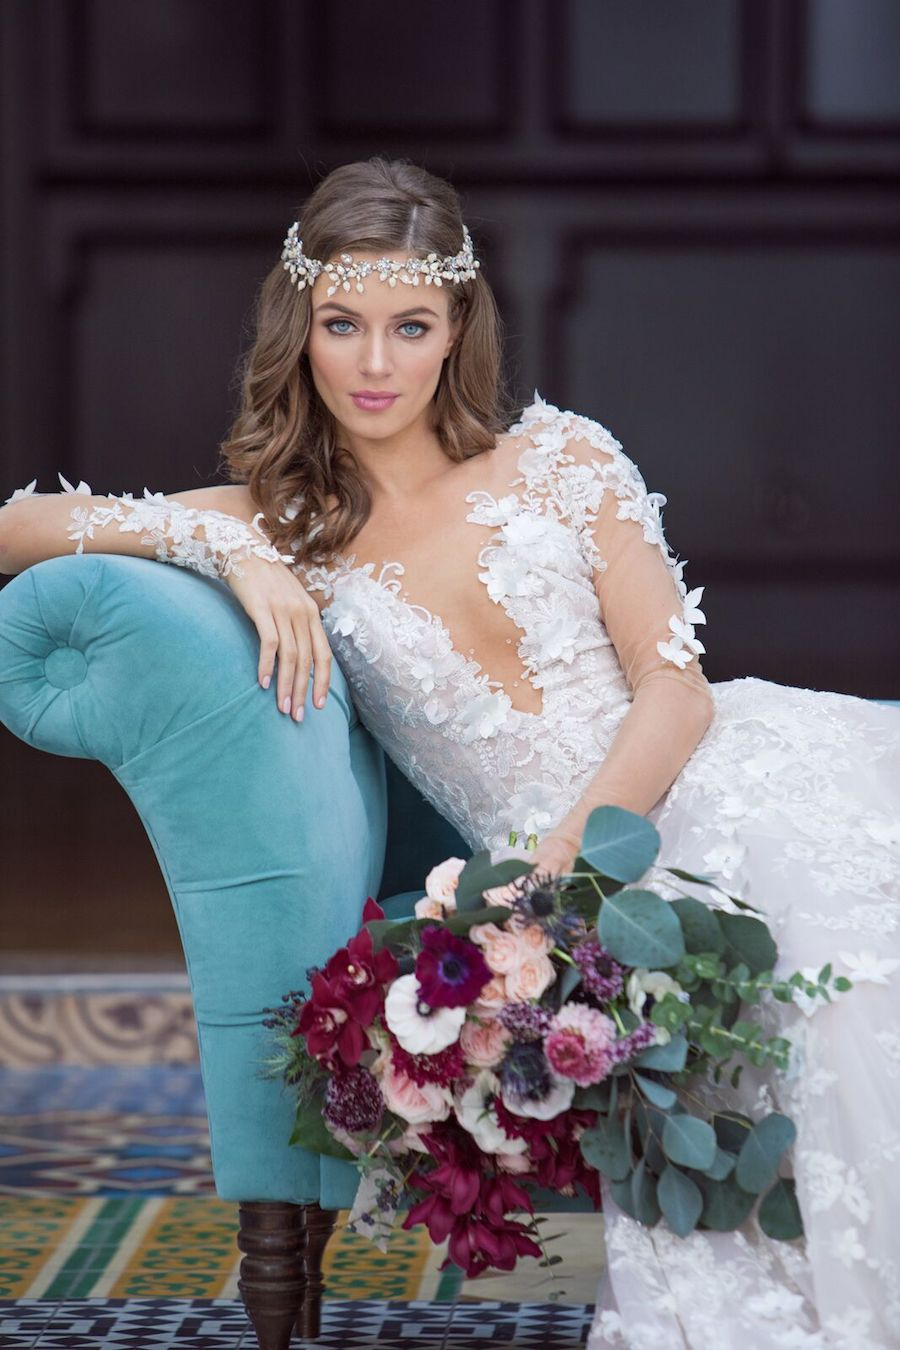 The next wedding gown is a plunging neckline one, with illusion sleeves and floral appliques all over